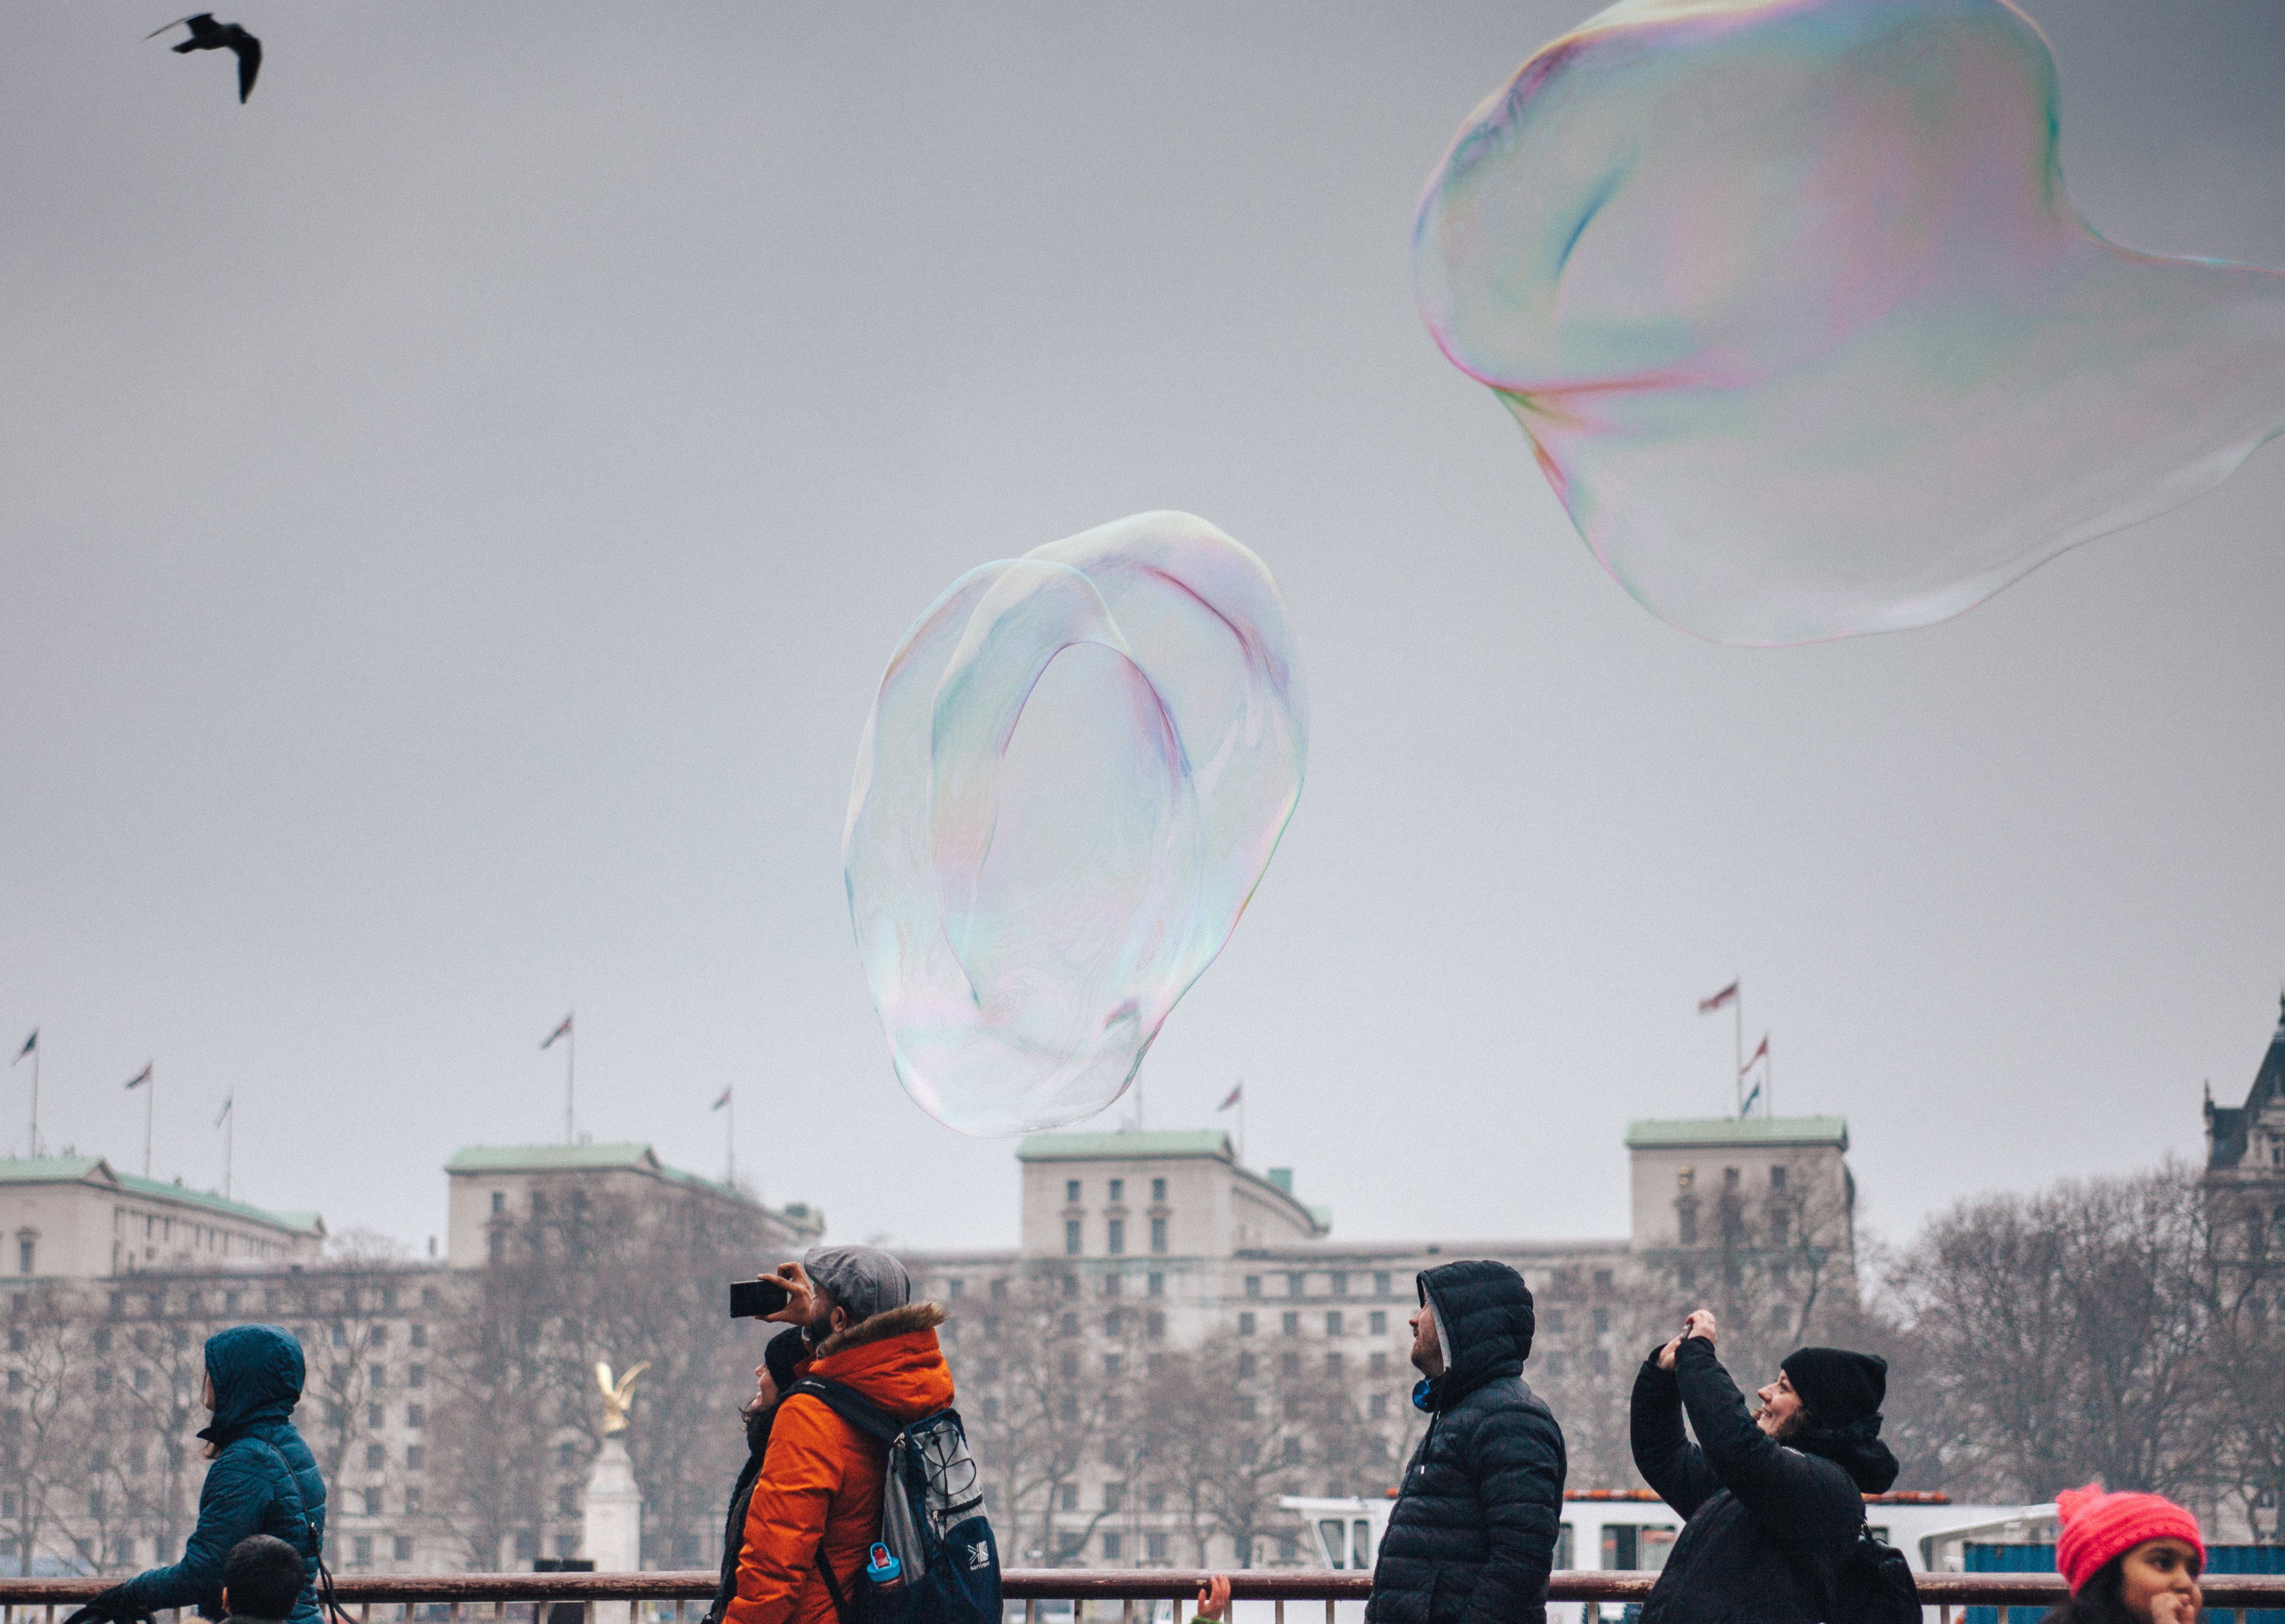 People Taking Photograph of Bubbles Floating Midair